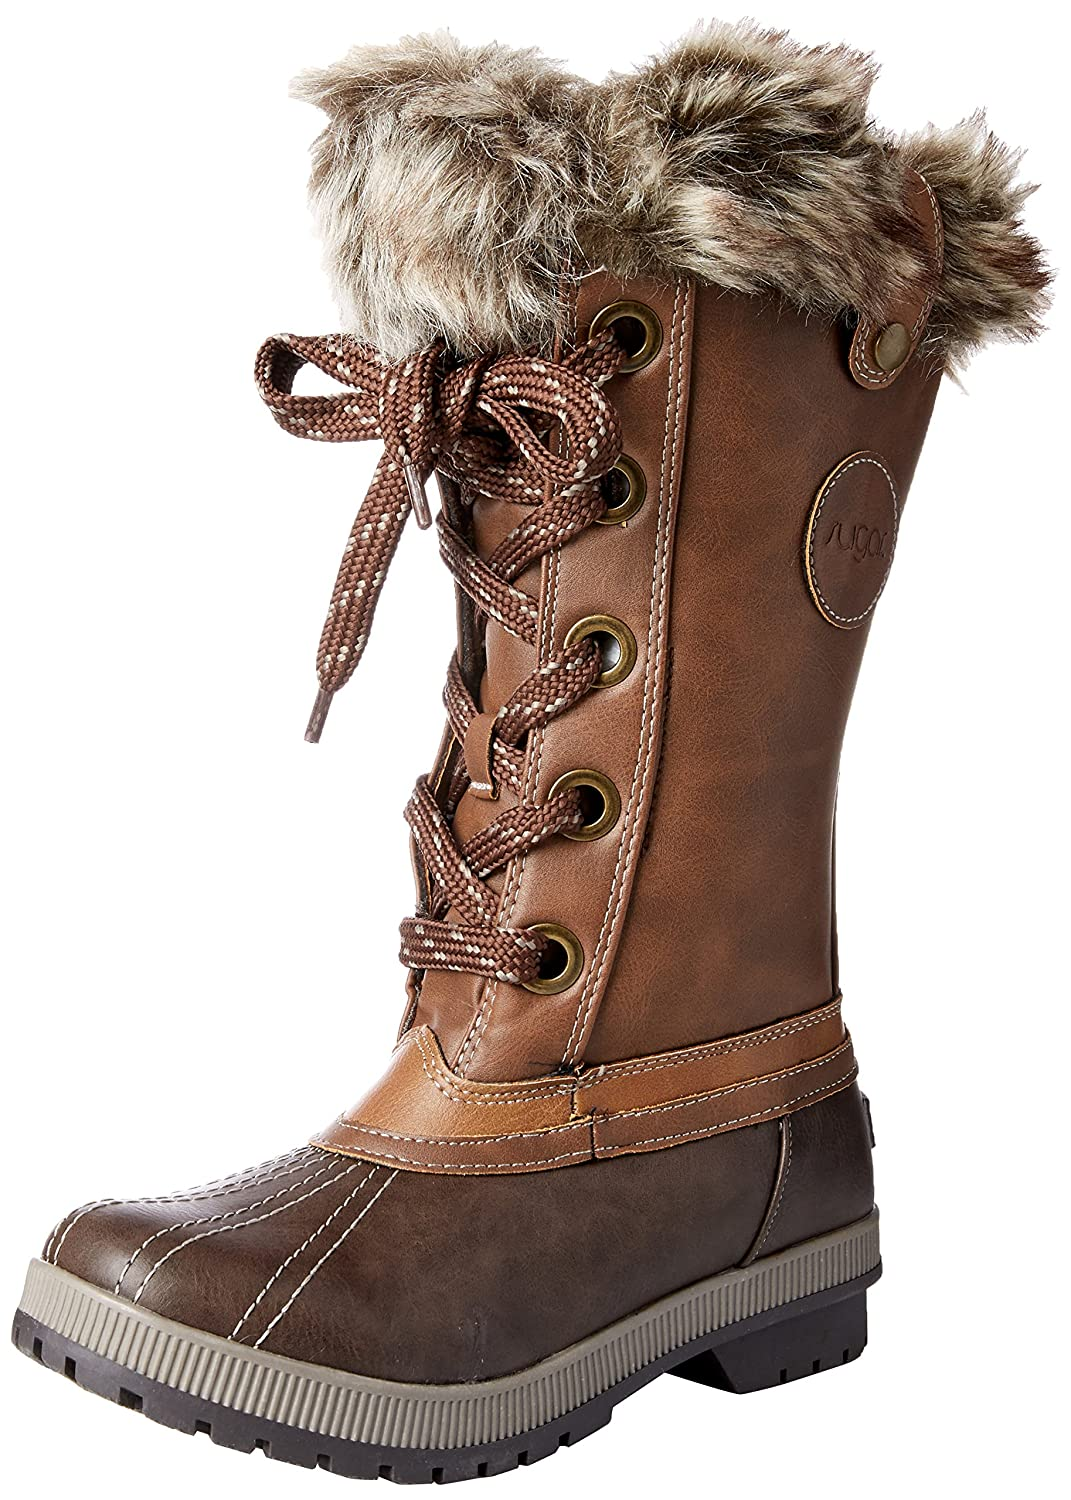 Sugar Women's Marlon Lace-up Snow Boot B076BXGVQT 8 B(M) US|Brown/Cognac